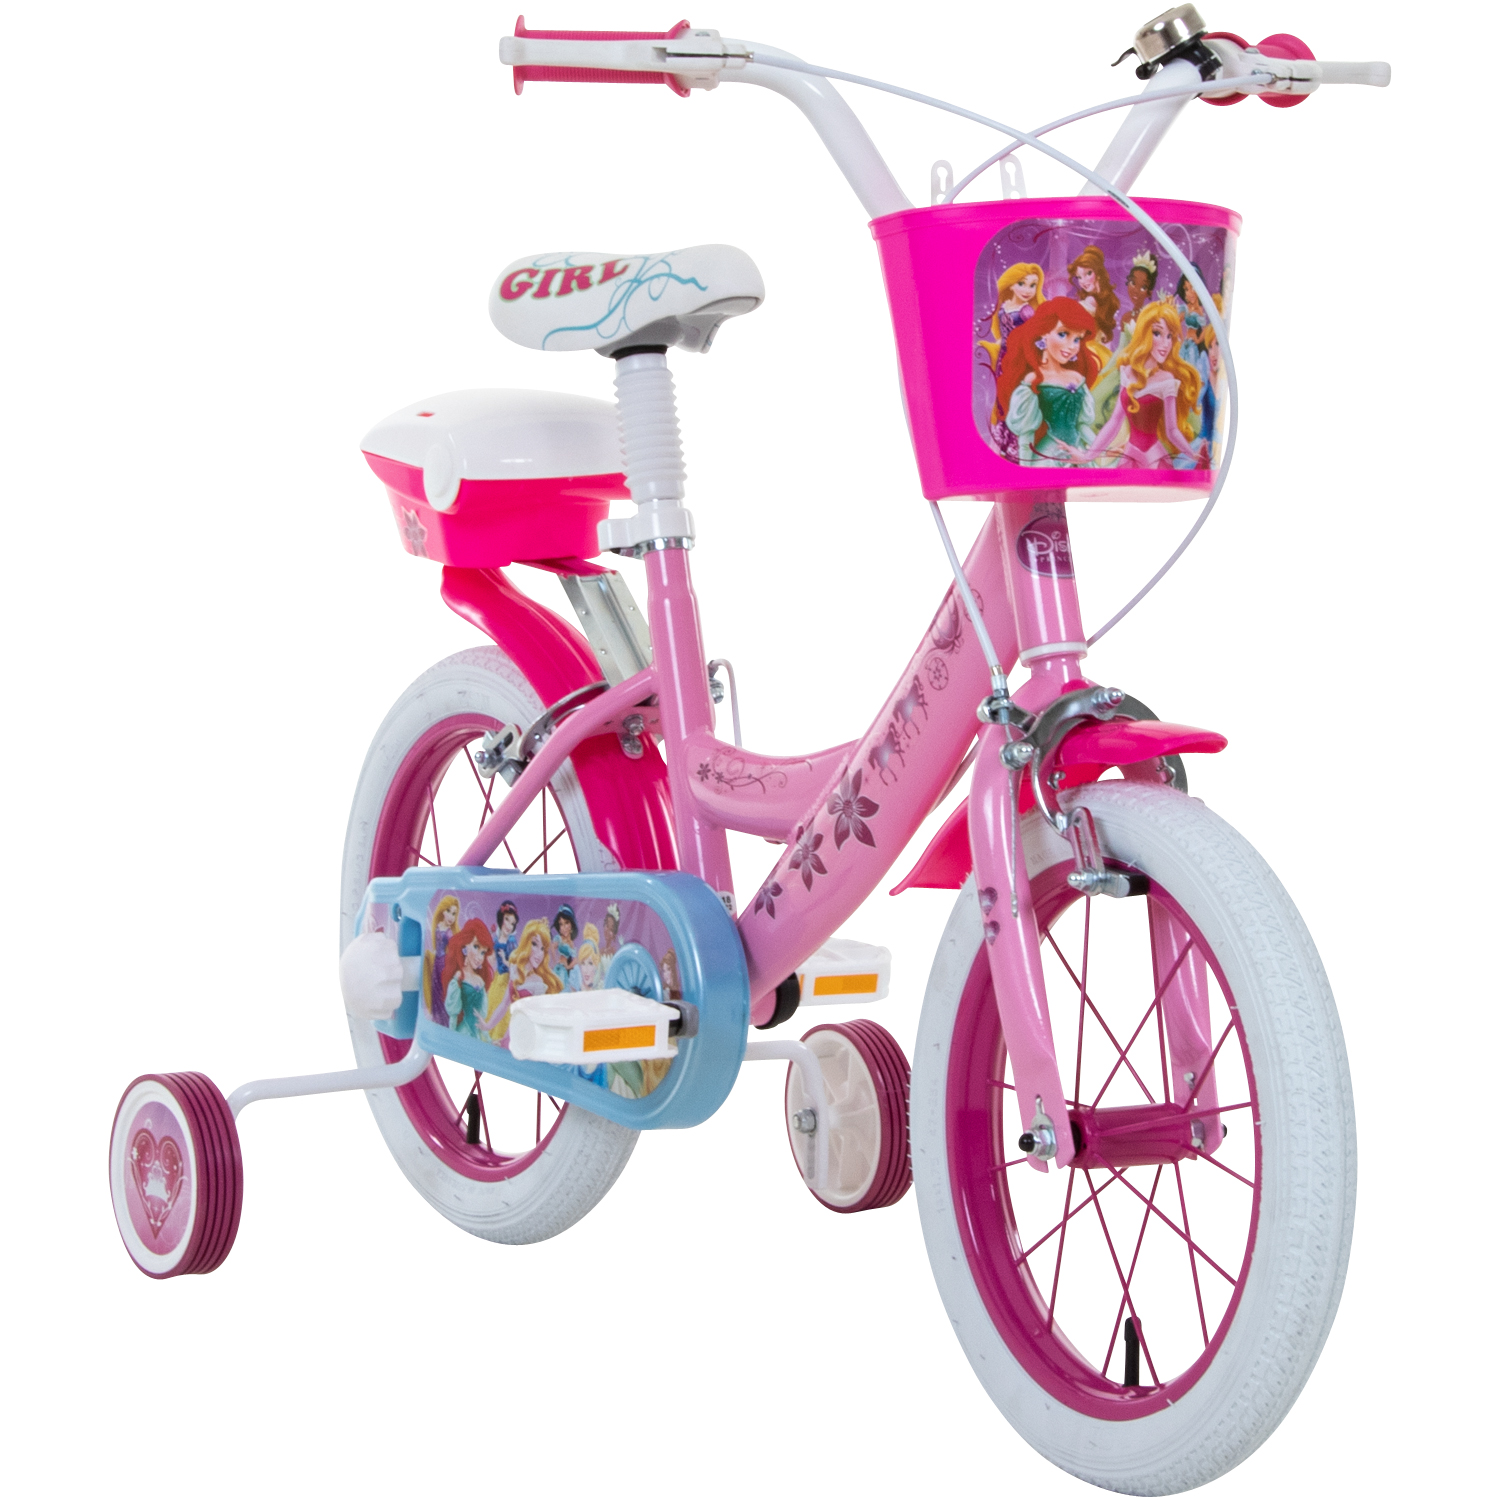 disney princess 14 zoll kinderfahrrad m dchenfahrrad. Black Bedroom Furniture Sets. Home Design Ideas